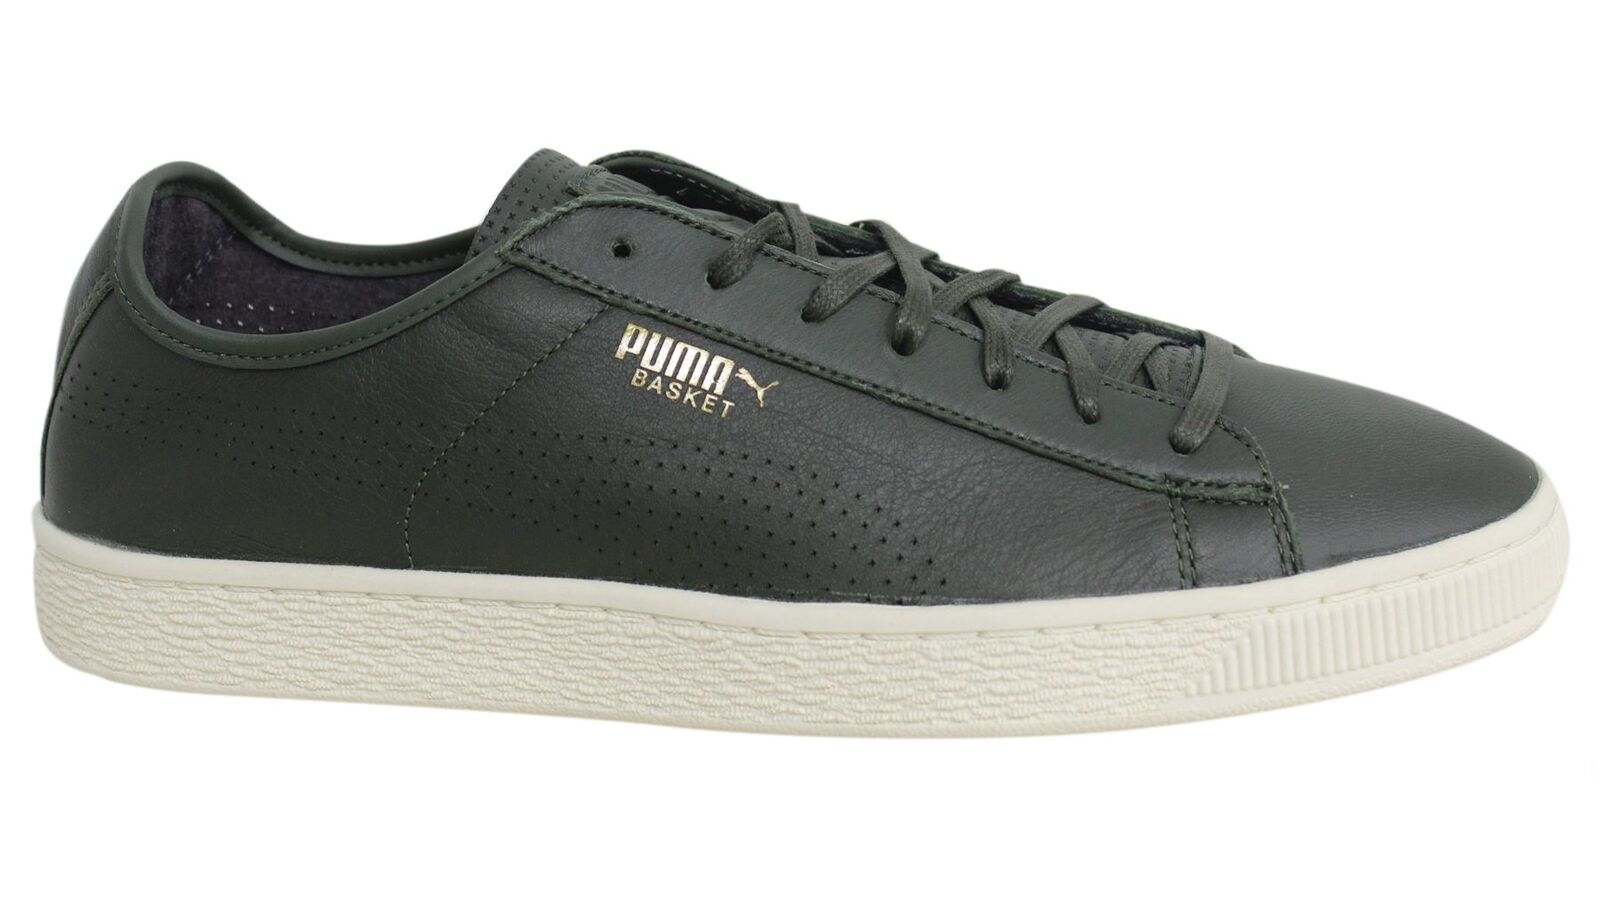 Puma Basket Classic Soft Leather Lace Up homme Trainers 363824 03 M12